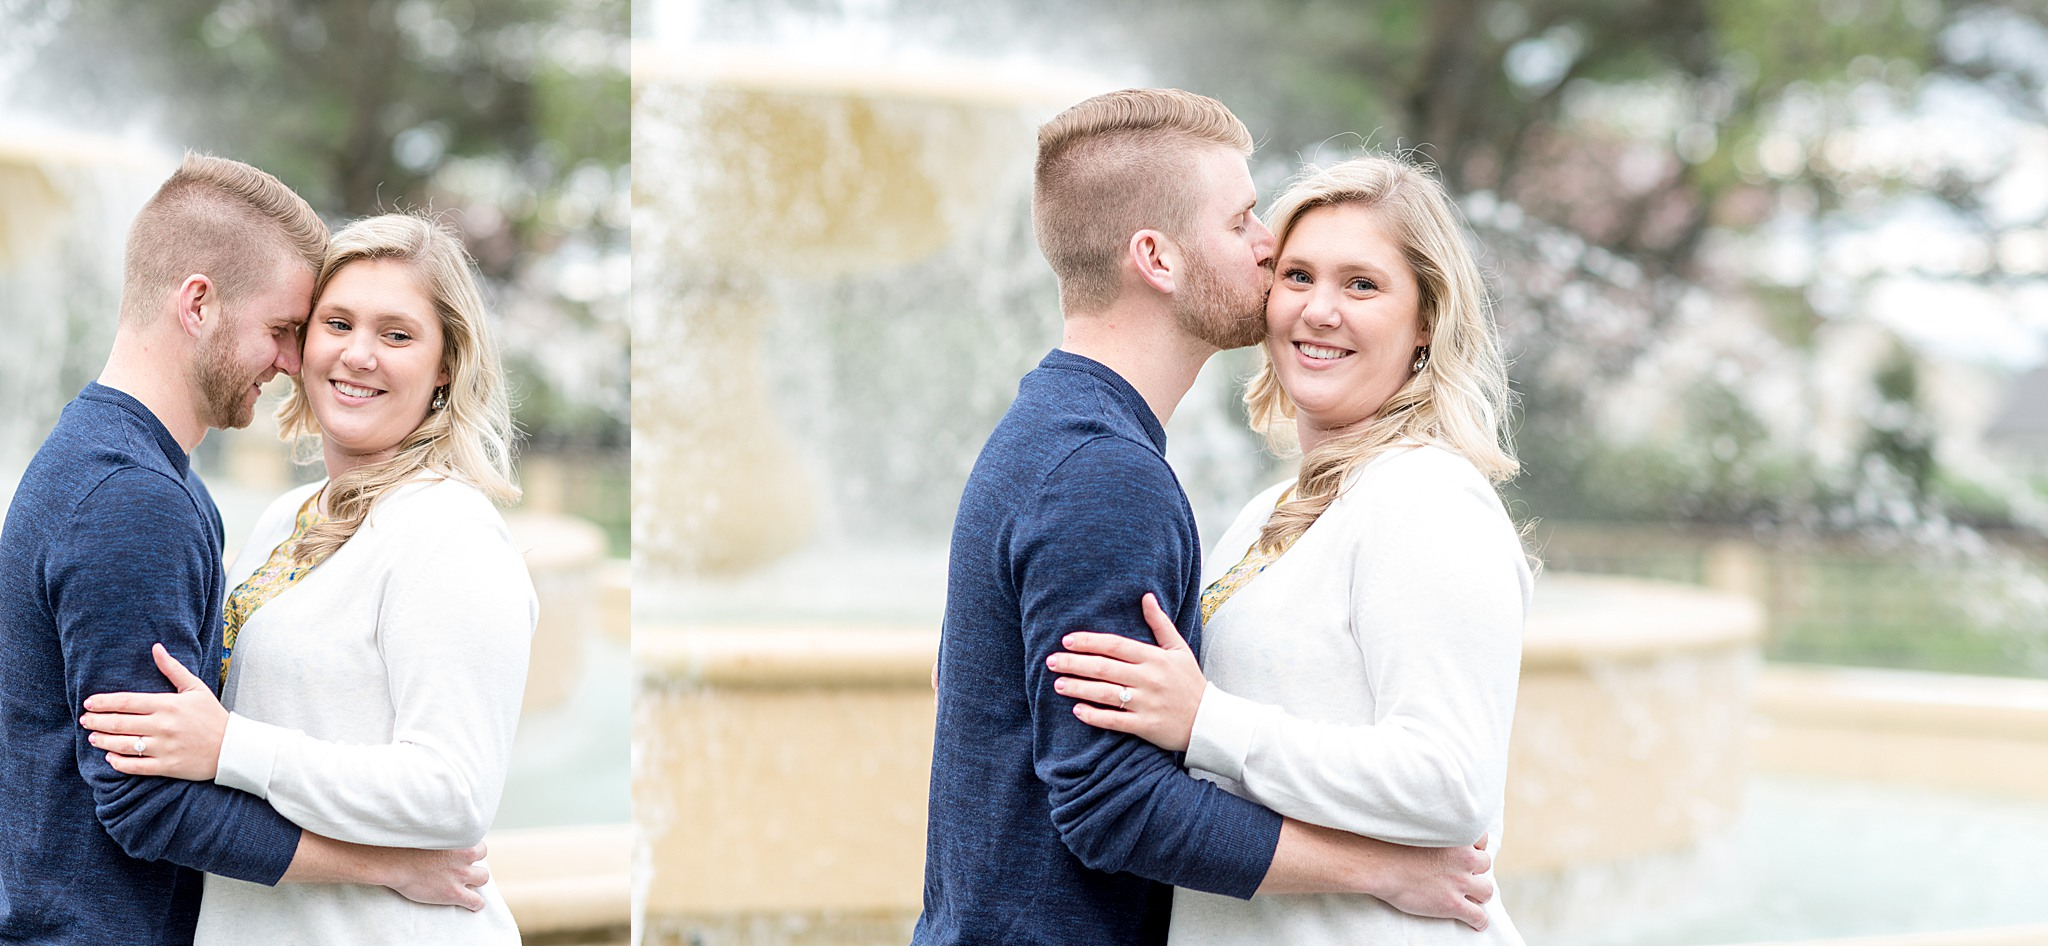 Masonic Village Elizabethtown PA Engagement Photography_3266.jpg